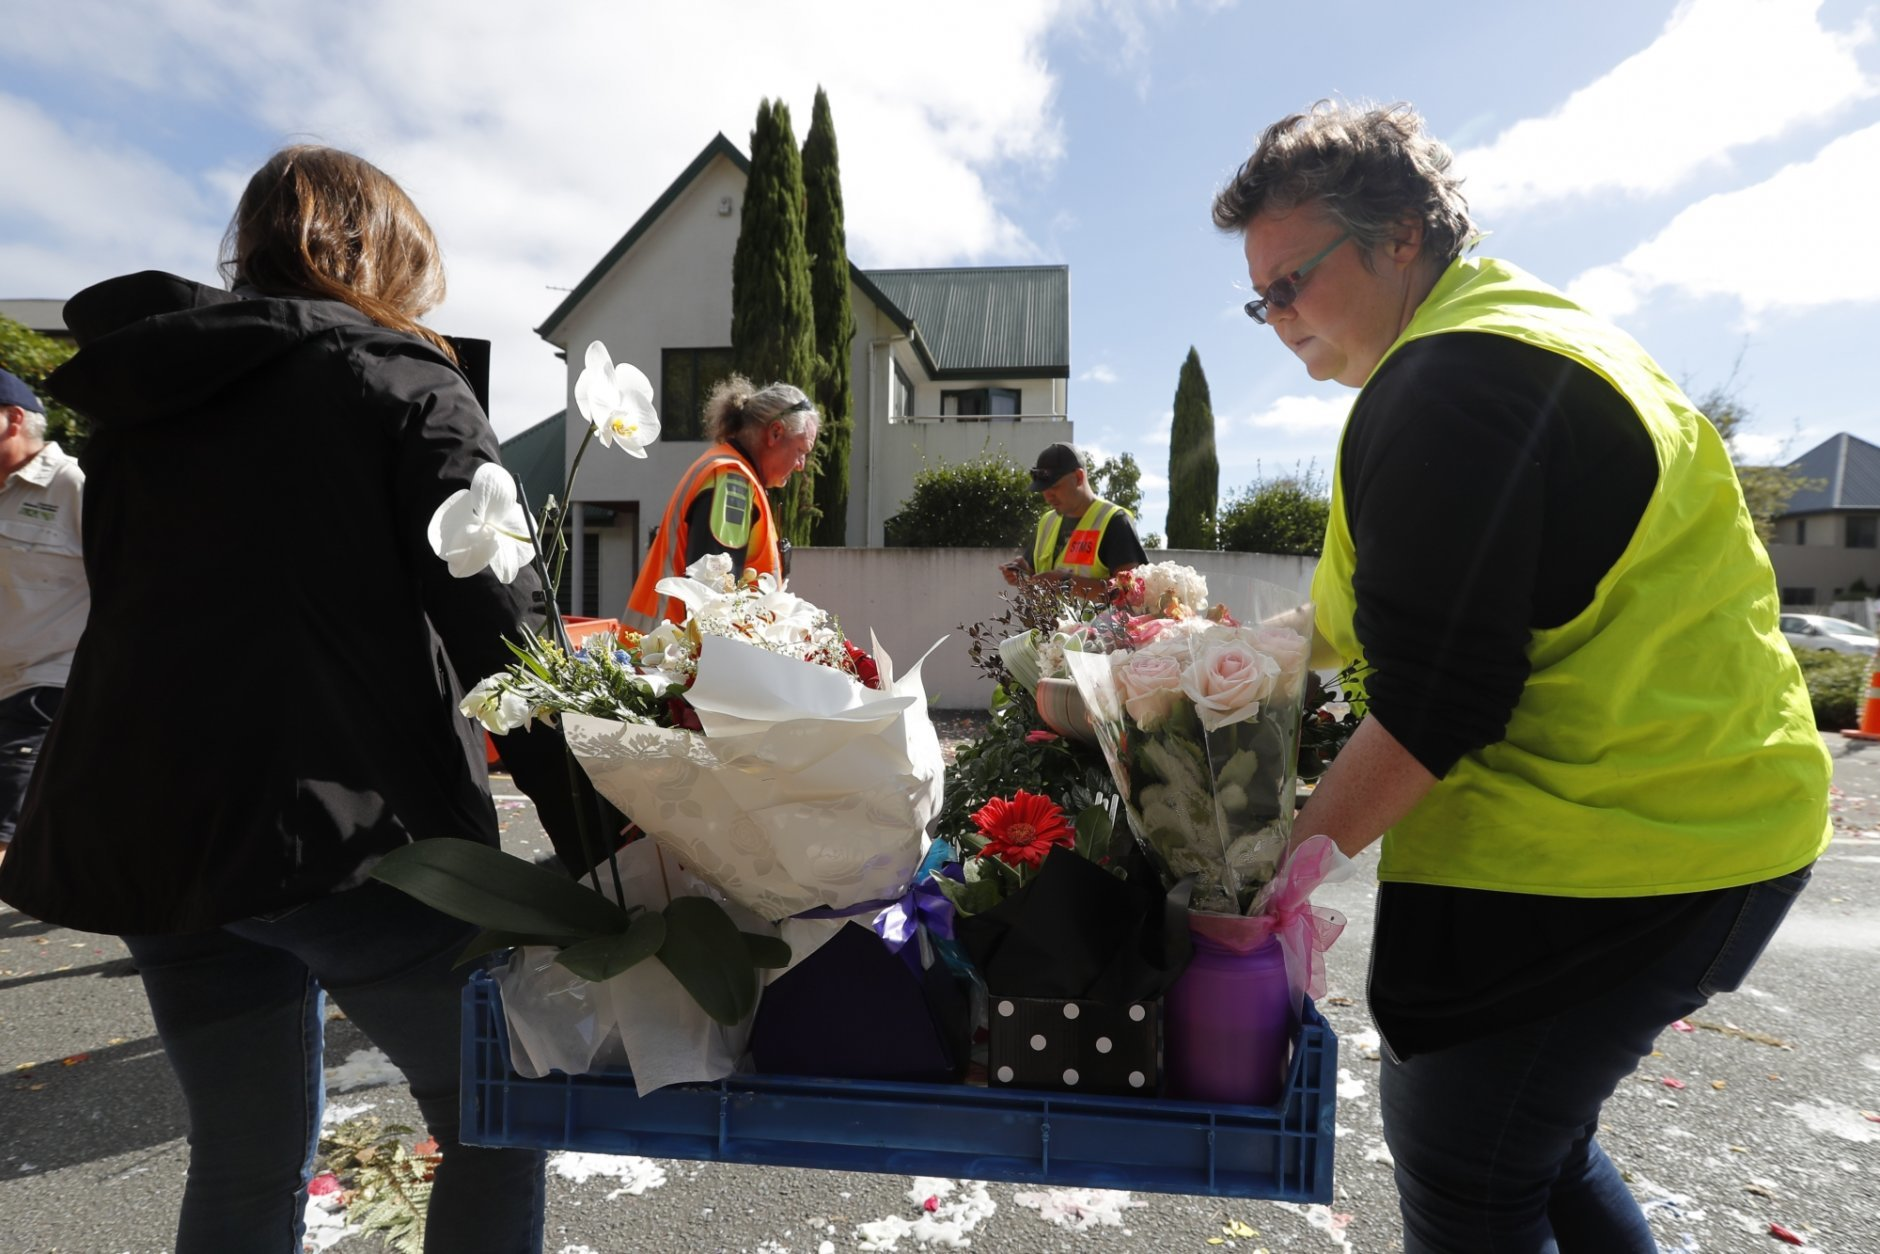 Volunteers move flowers away near the Al Noor mosque in Christchurch, New Zealand, Thursday, March 21, 2019. Thousands of people were expected to come together for an emotional Friday prayer service led by the imam of one of the two New Zealand mosques where 50 worshippers were killed in a white supremacist attack on Friday March 15. (AP Photo/Vincent Thian)